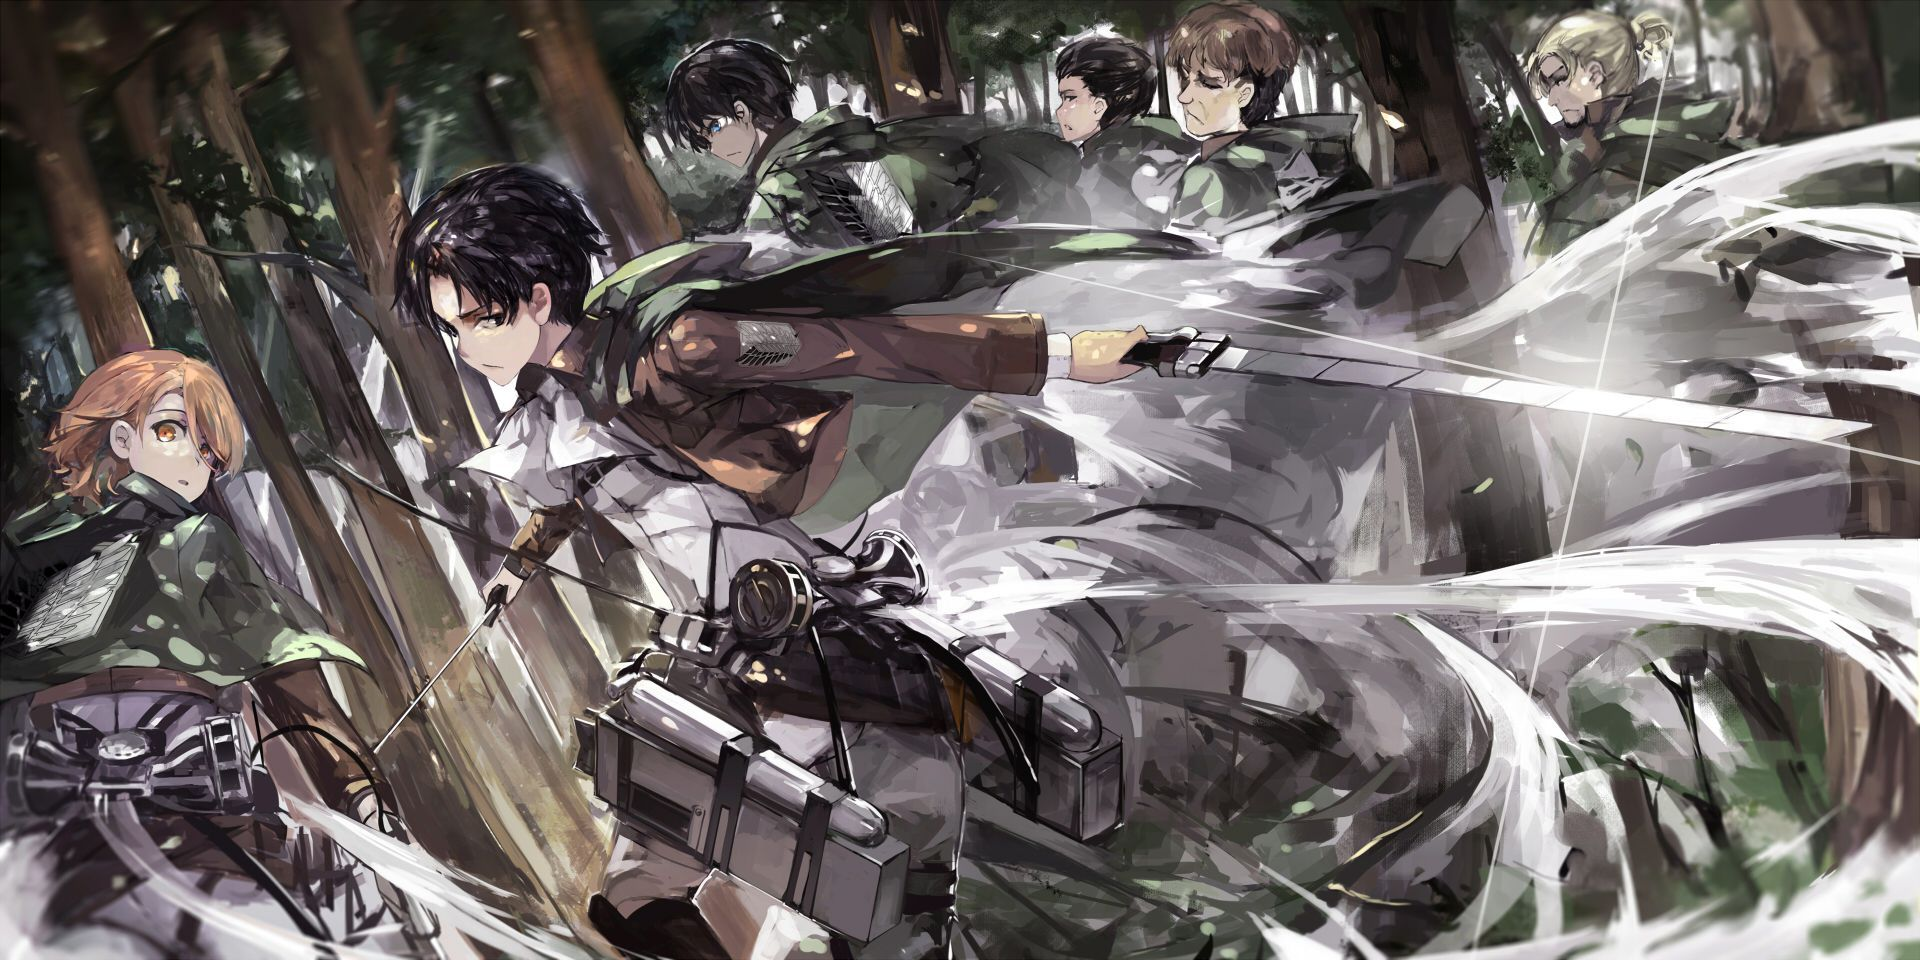 進撃の巨人 Singeki No Kyojin Snk Attack On Titan Aot